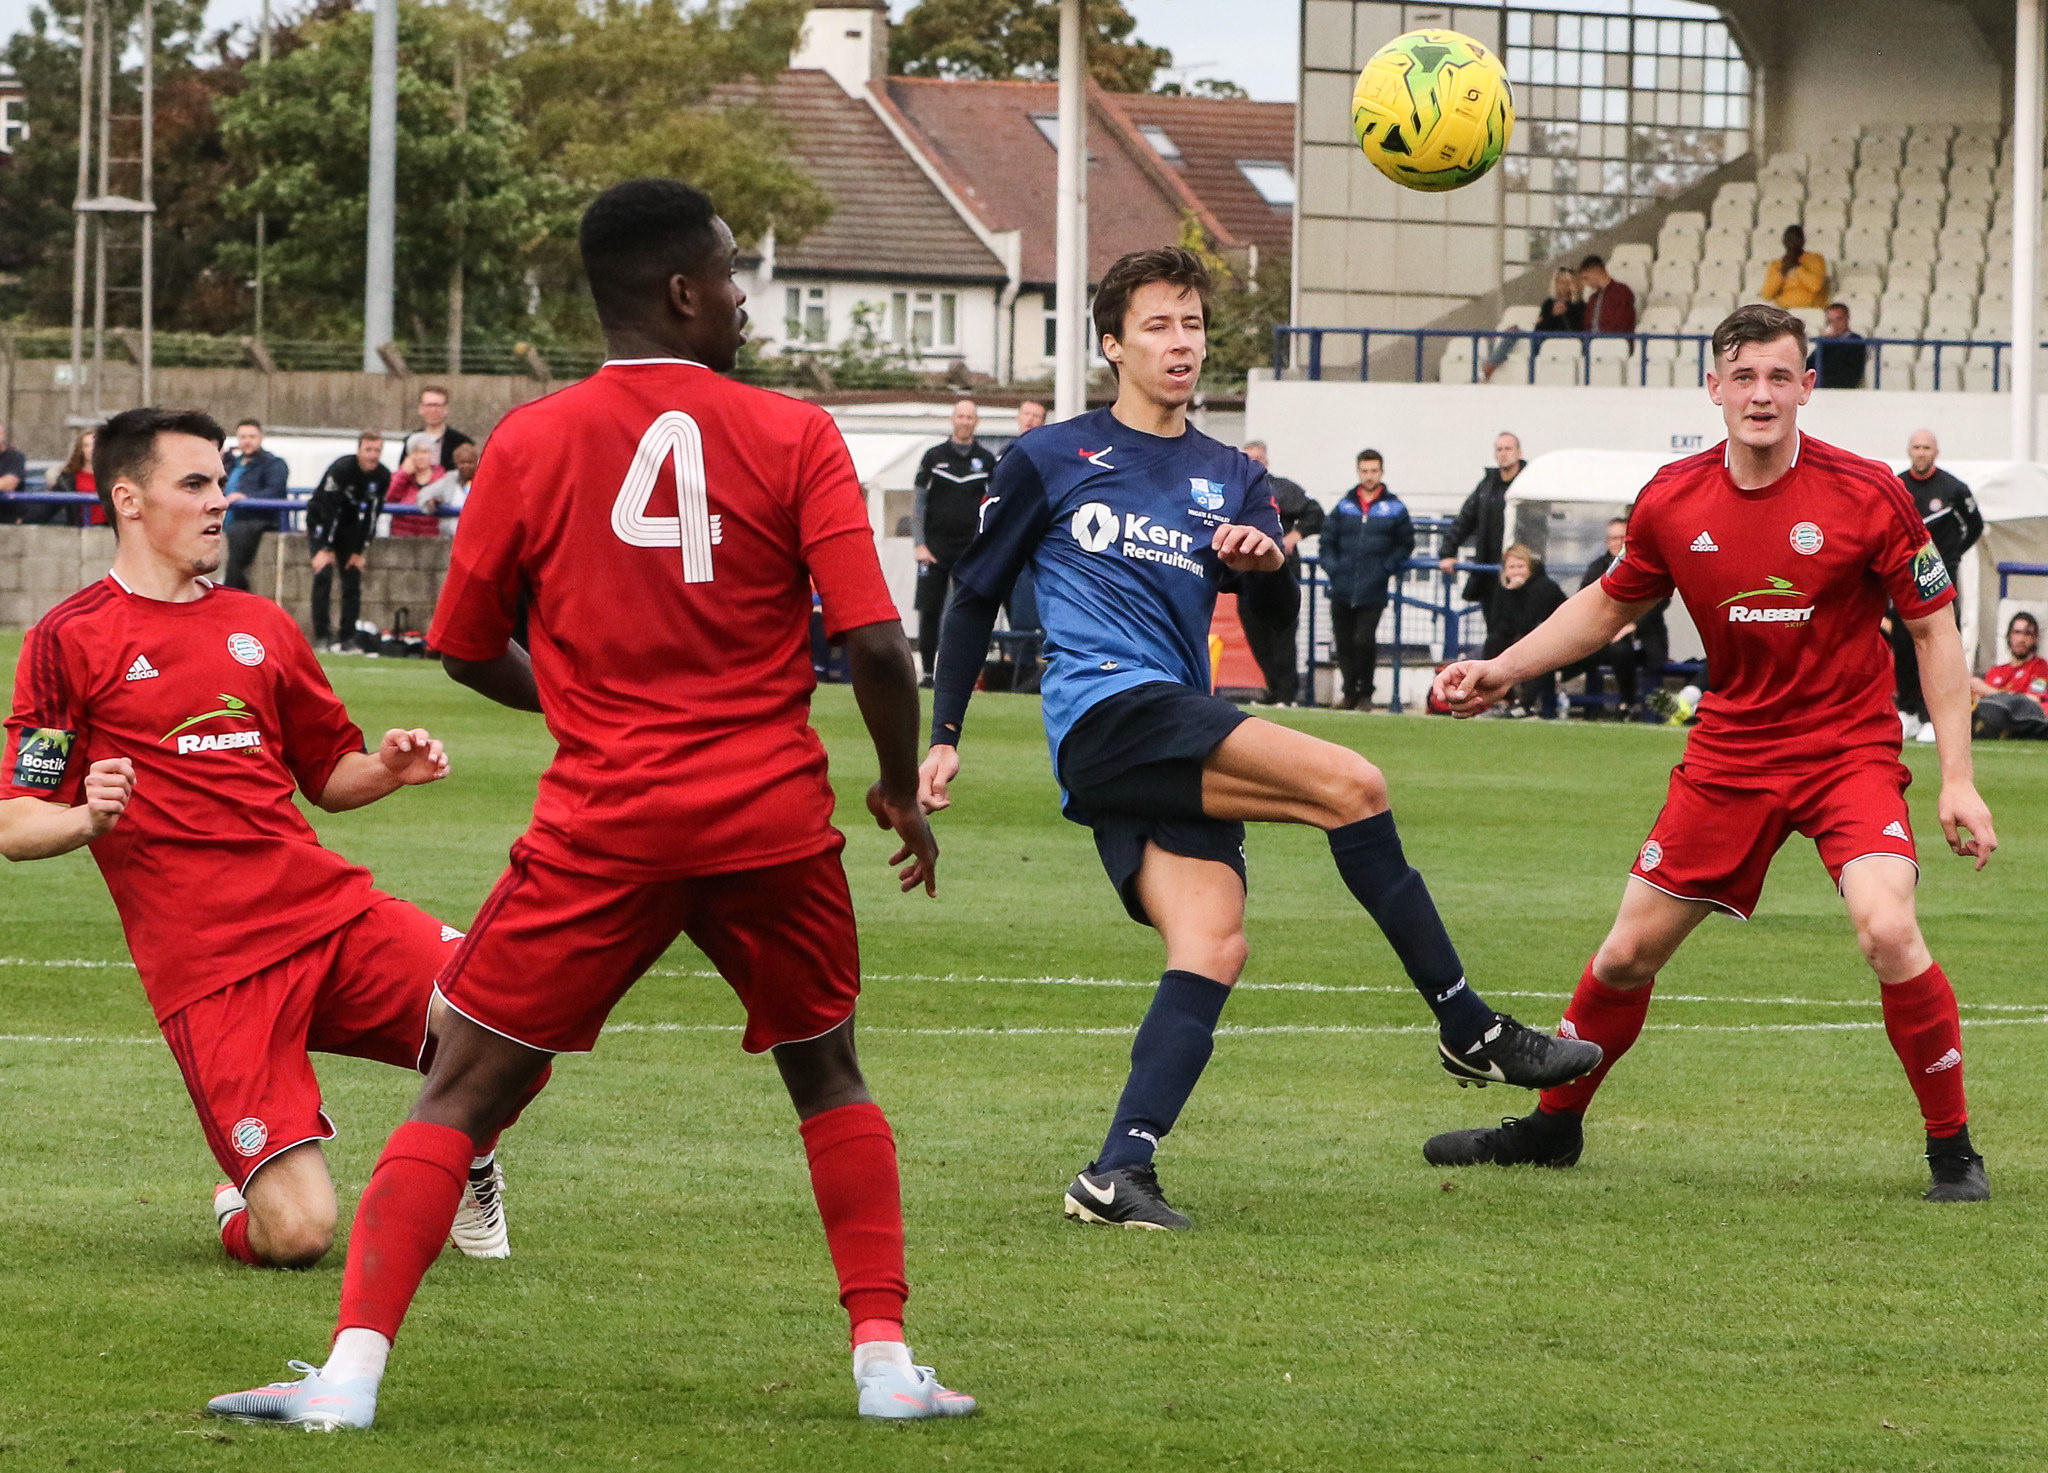 Wingate and Finchley were narrowly beaten in Tonbridge. Picture: Martin Addison